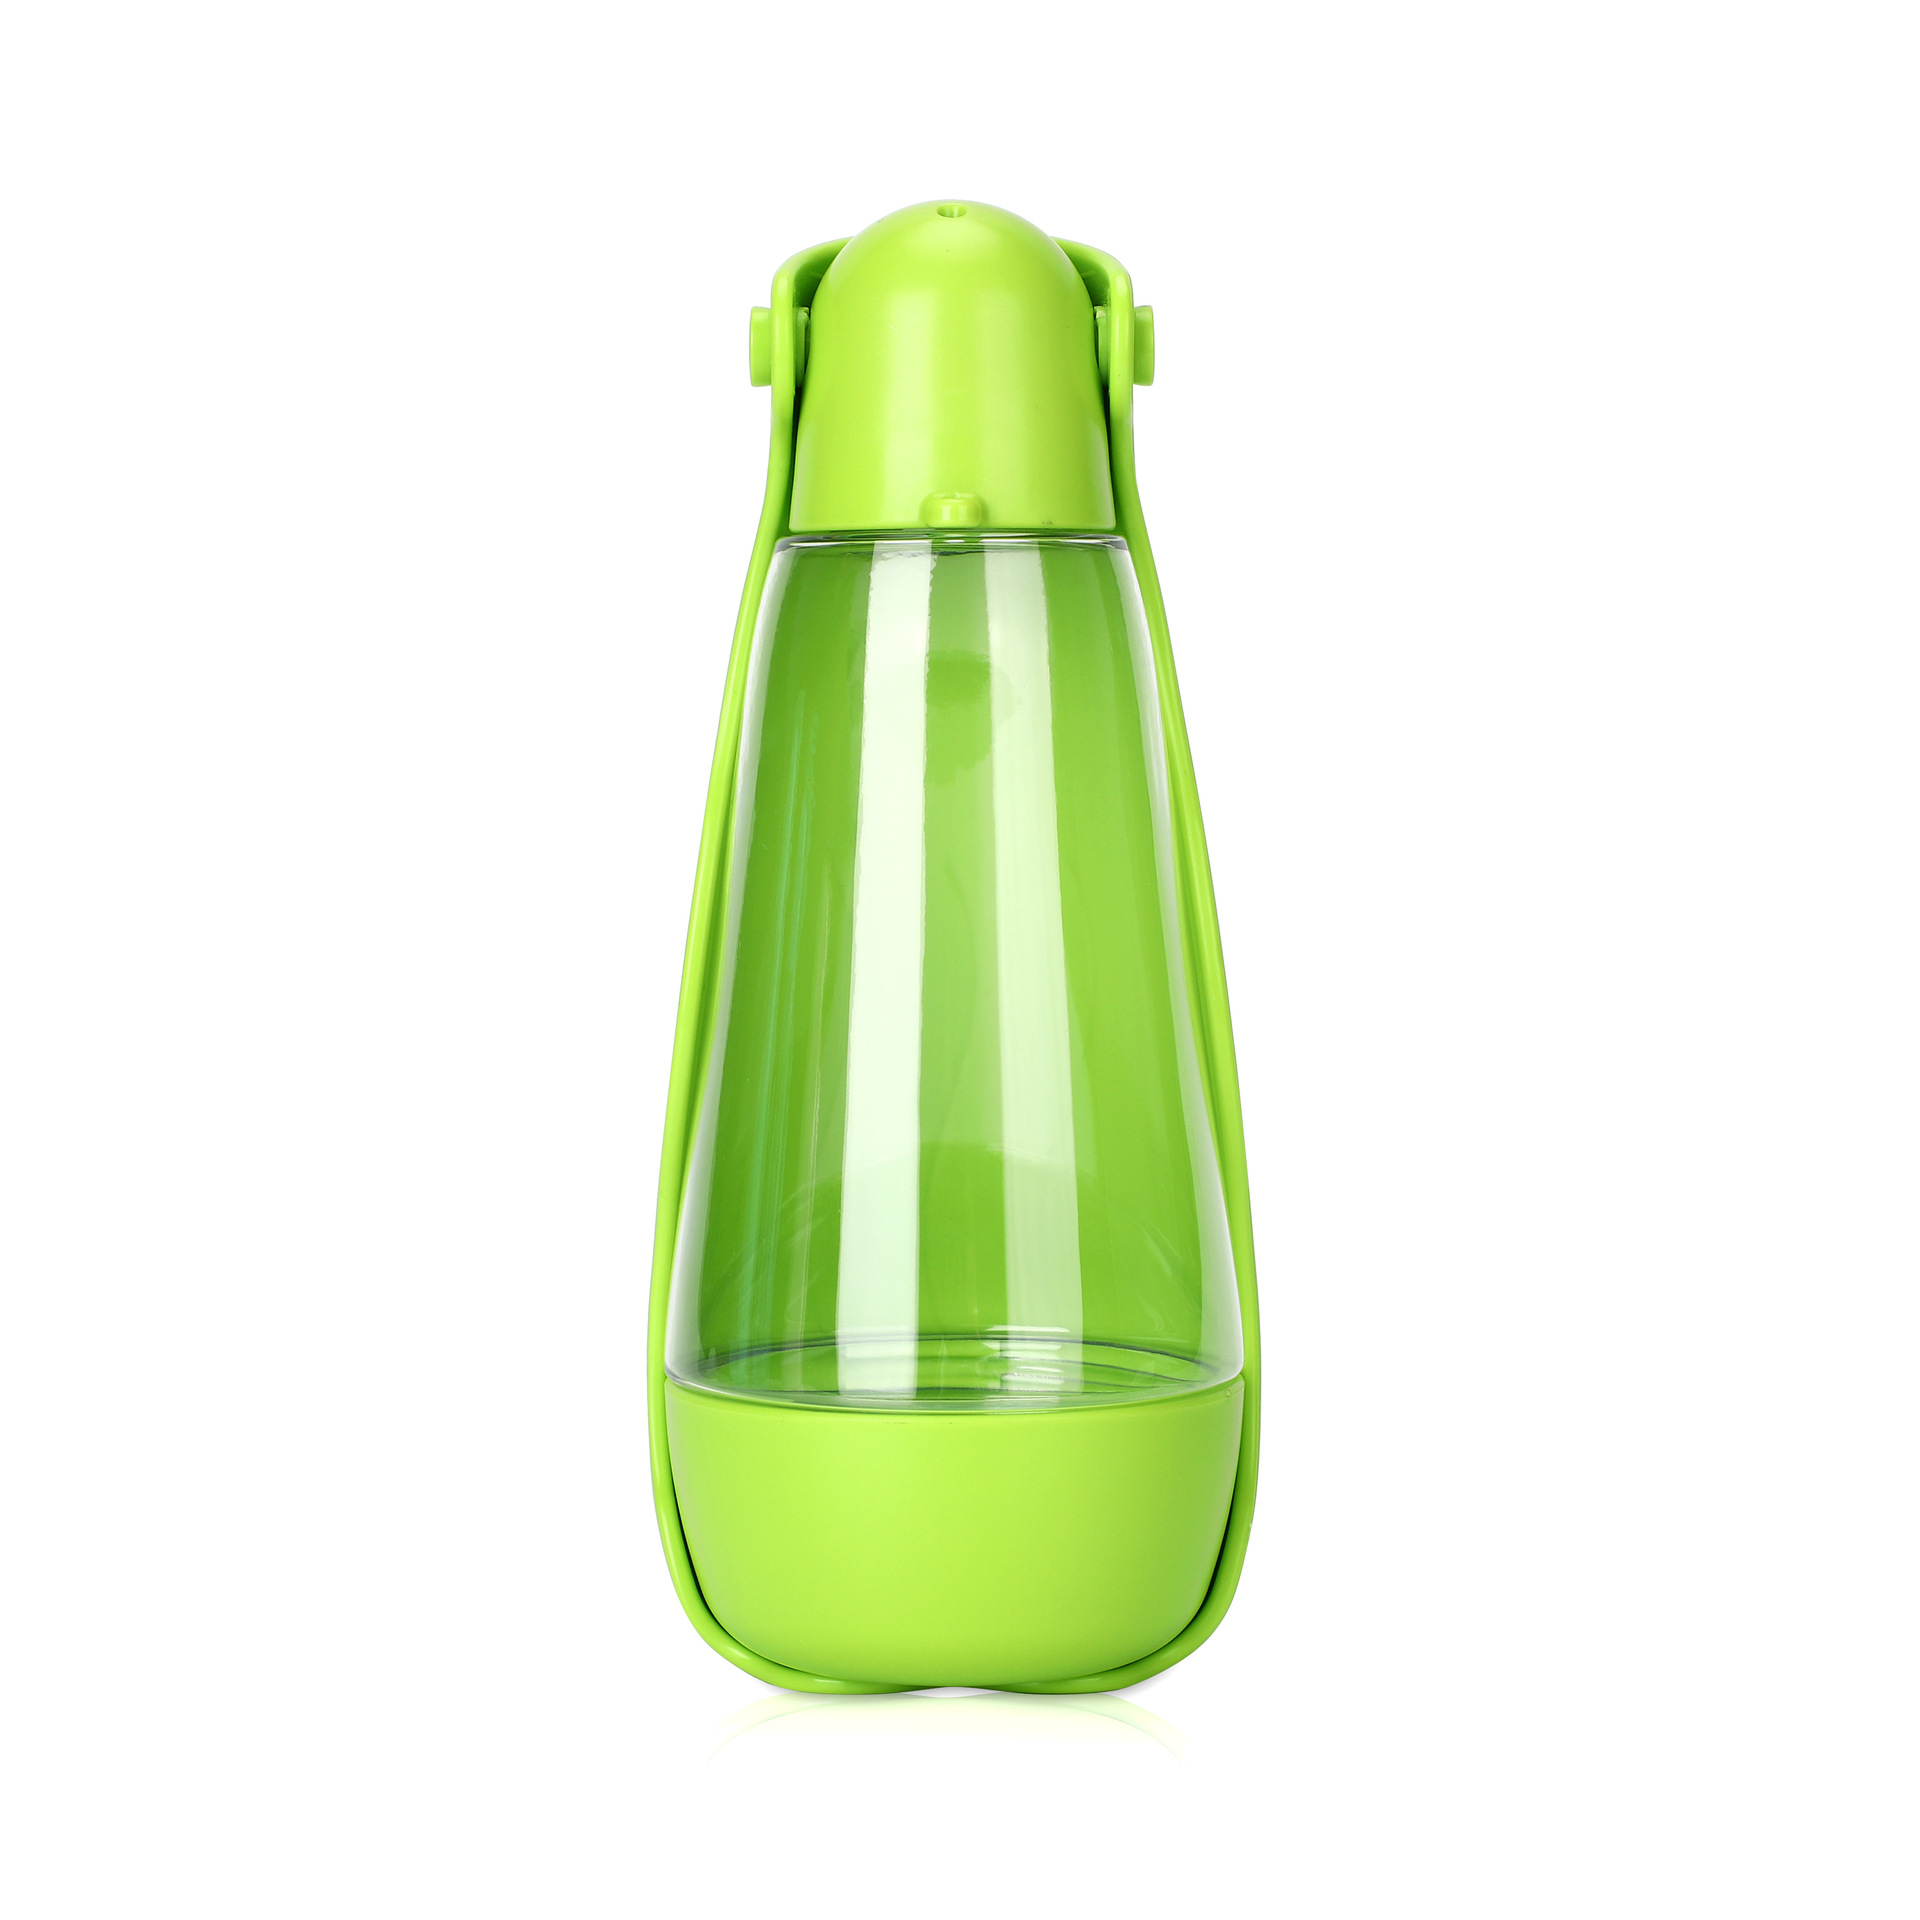 DogMEGA™ 2 in 1 Portable Multifunctional Dog Accompanying Cup